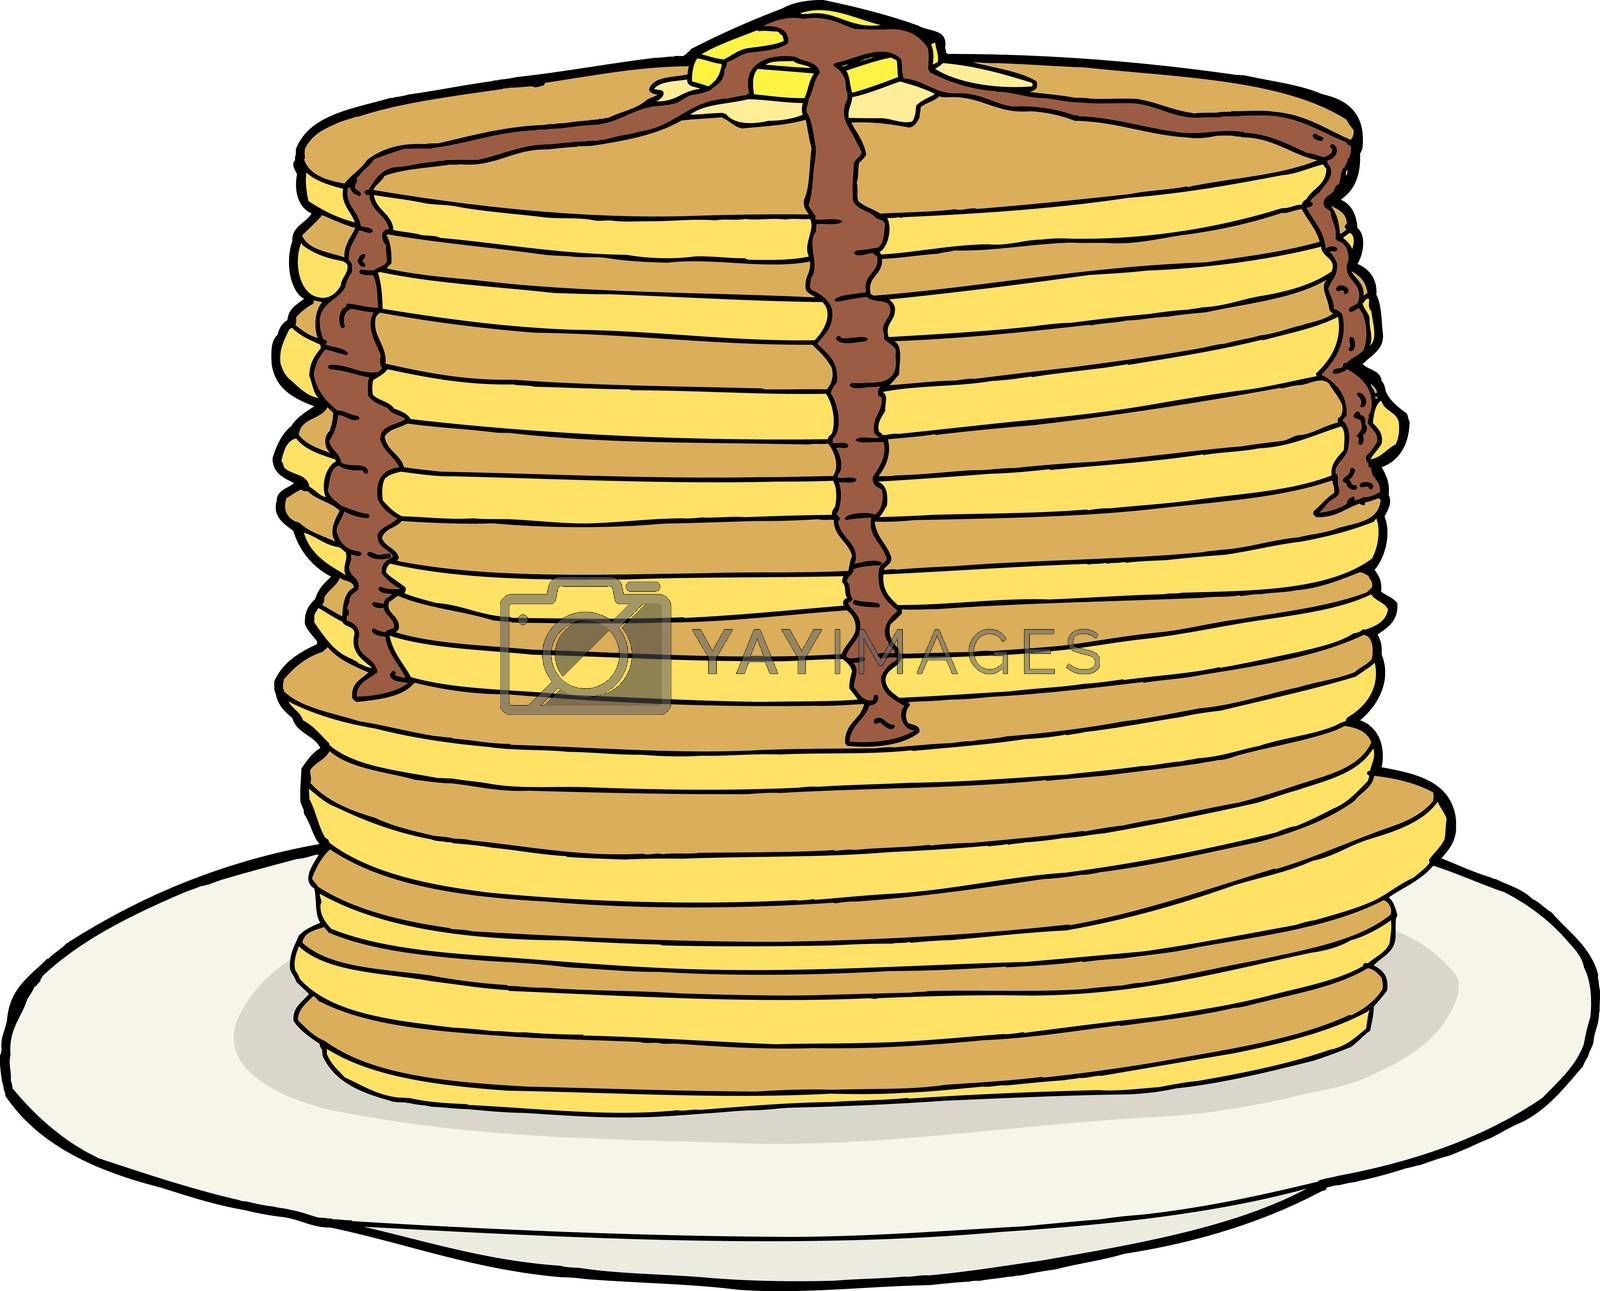 Royalty free image of Isolated Pancakes by TheBlackRhino